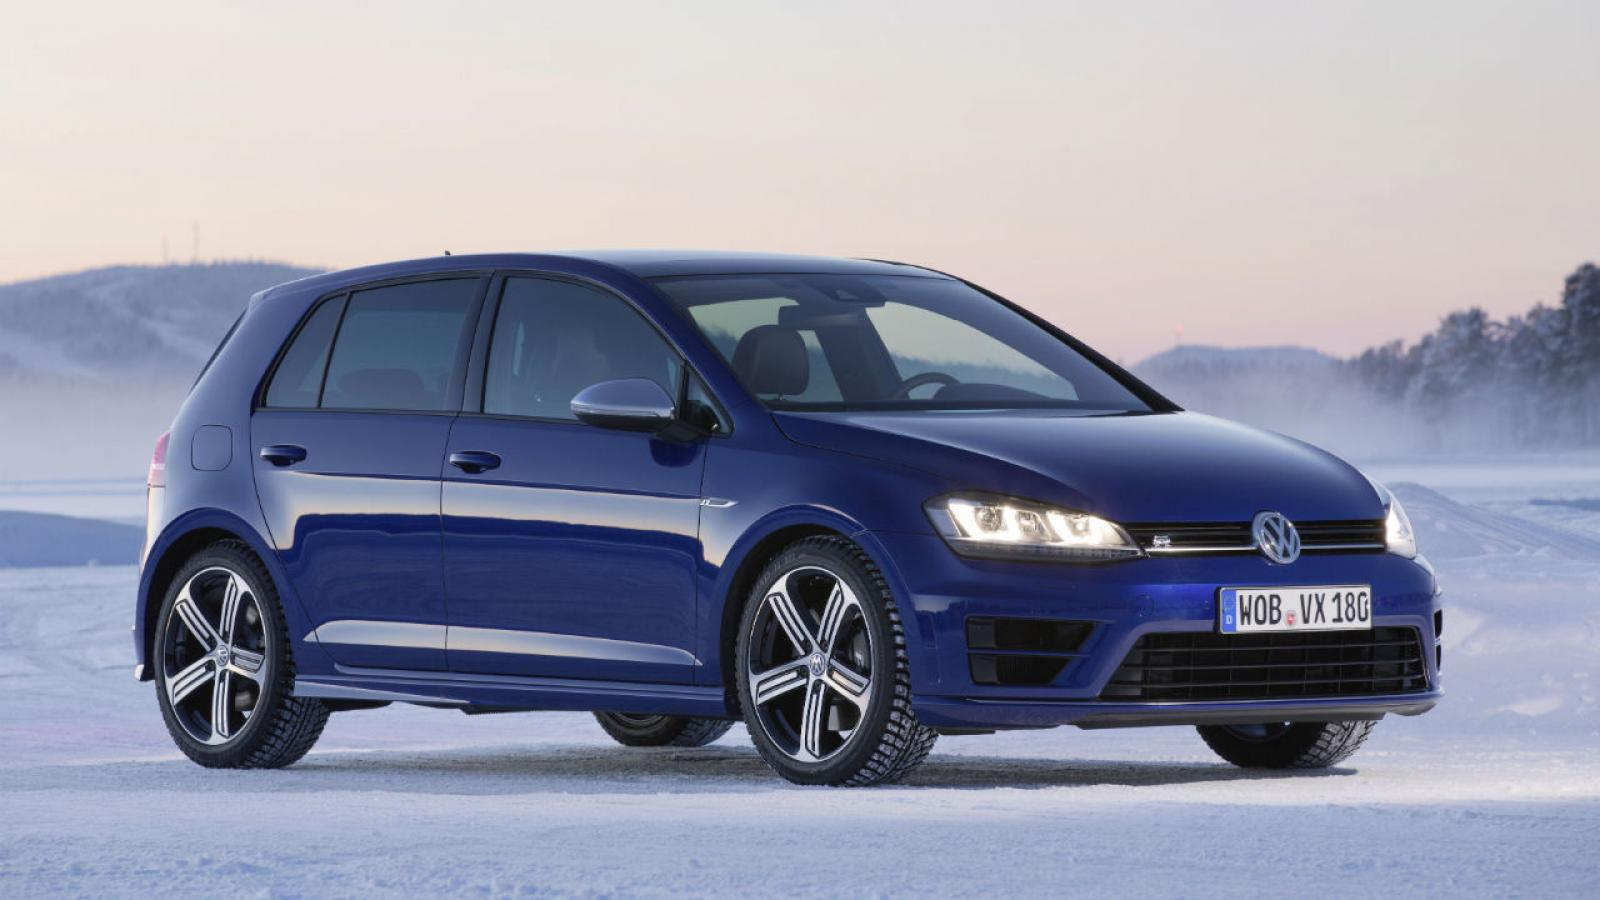 2015 volkswagen golf r information and photos zombiedrive. Black Bedroom Furniture Sets. Home Design Ideas